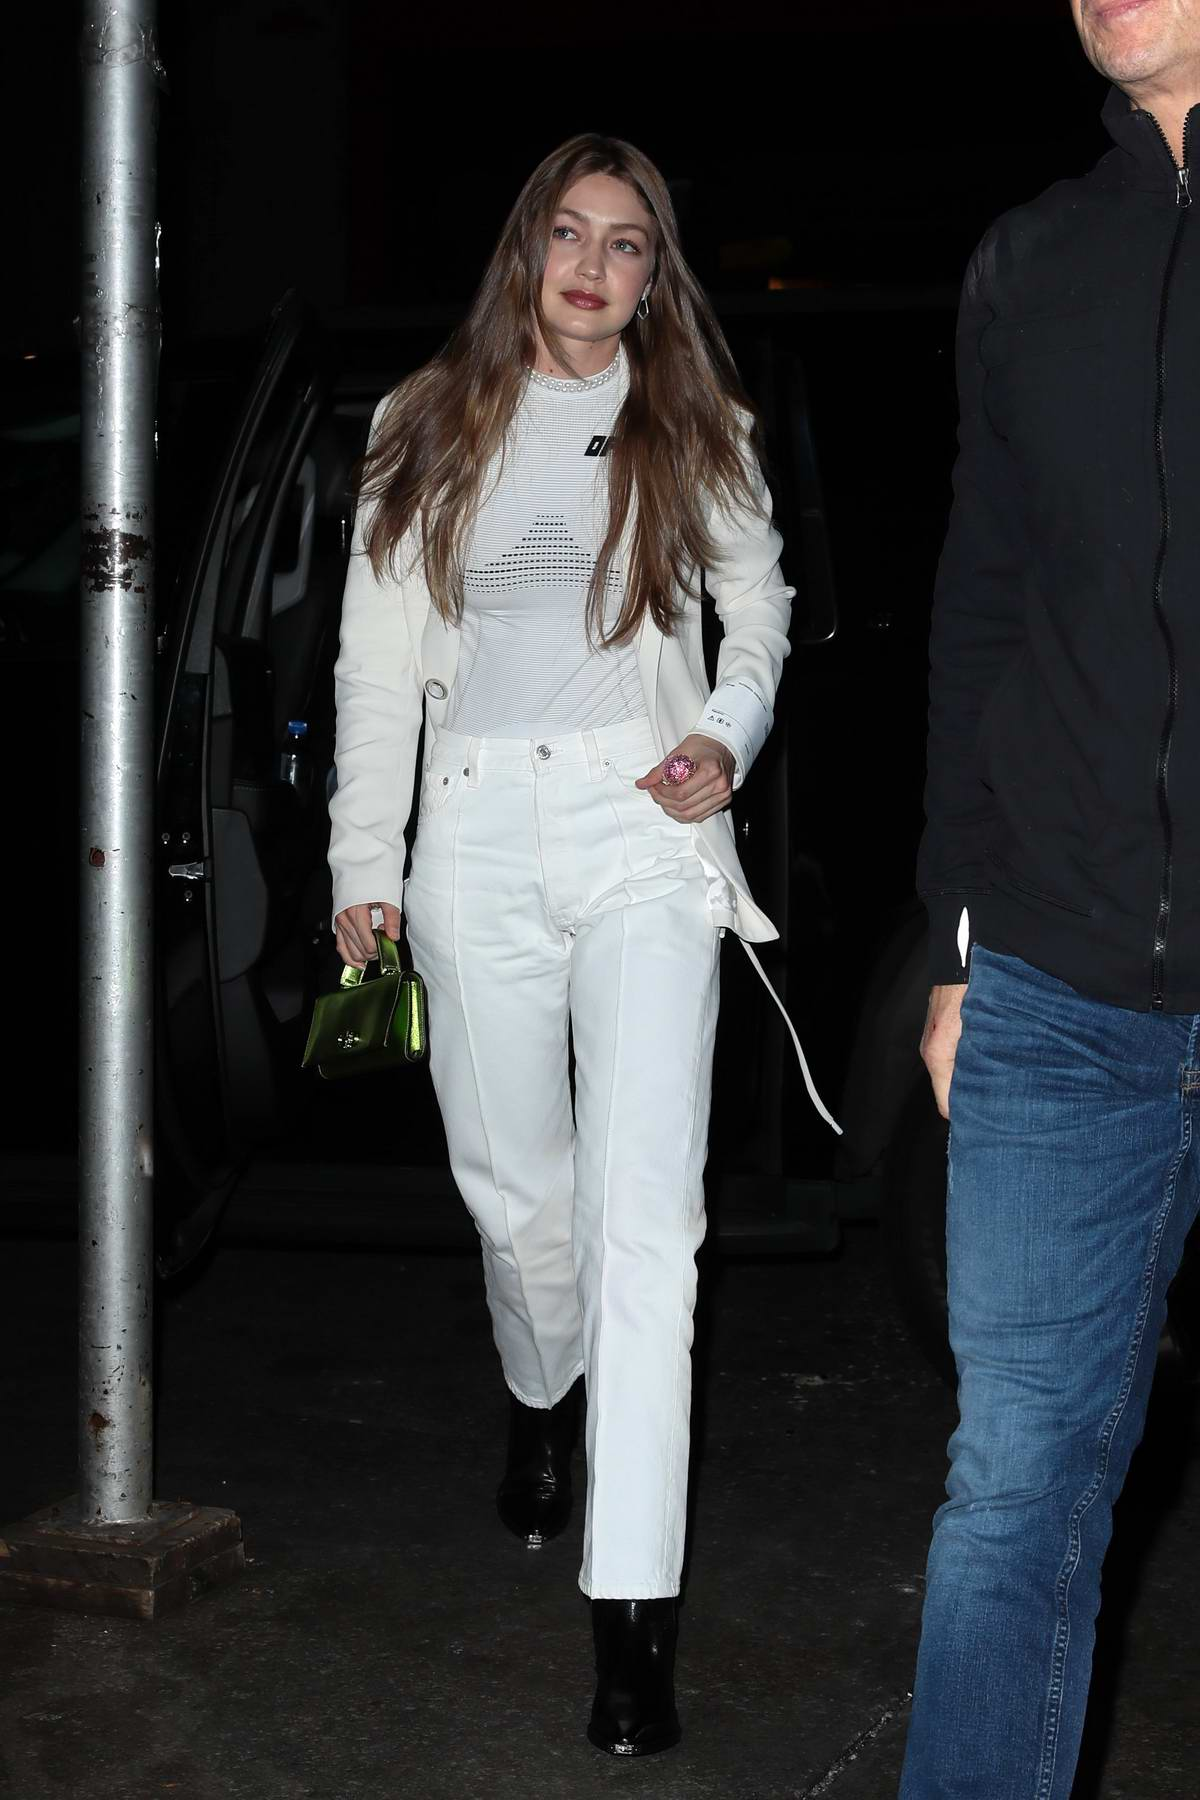 973c3b04470 gigi hadid dons all white as she heads out for dinner with friends in new  york city-300319_5